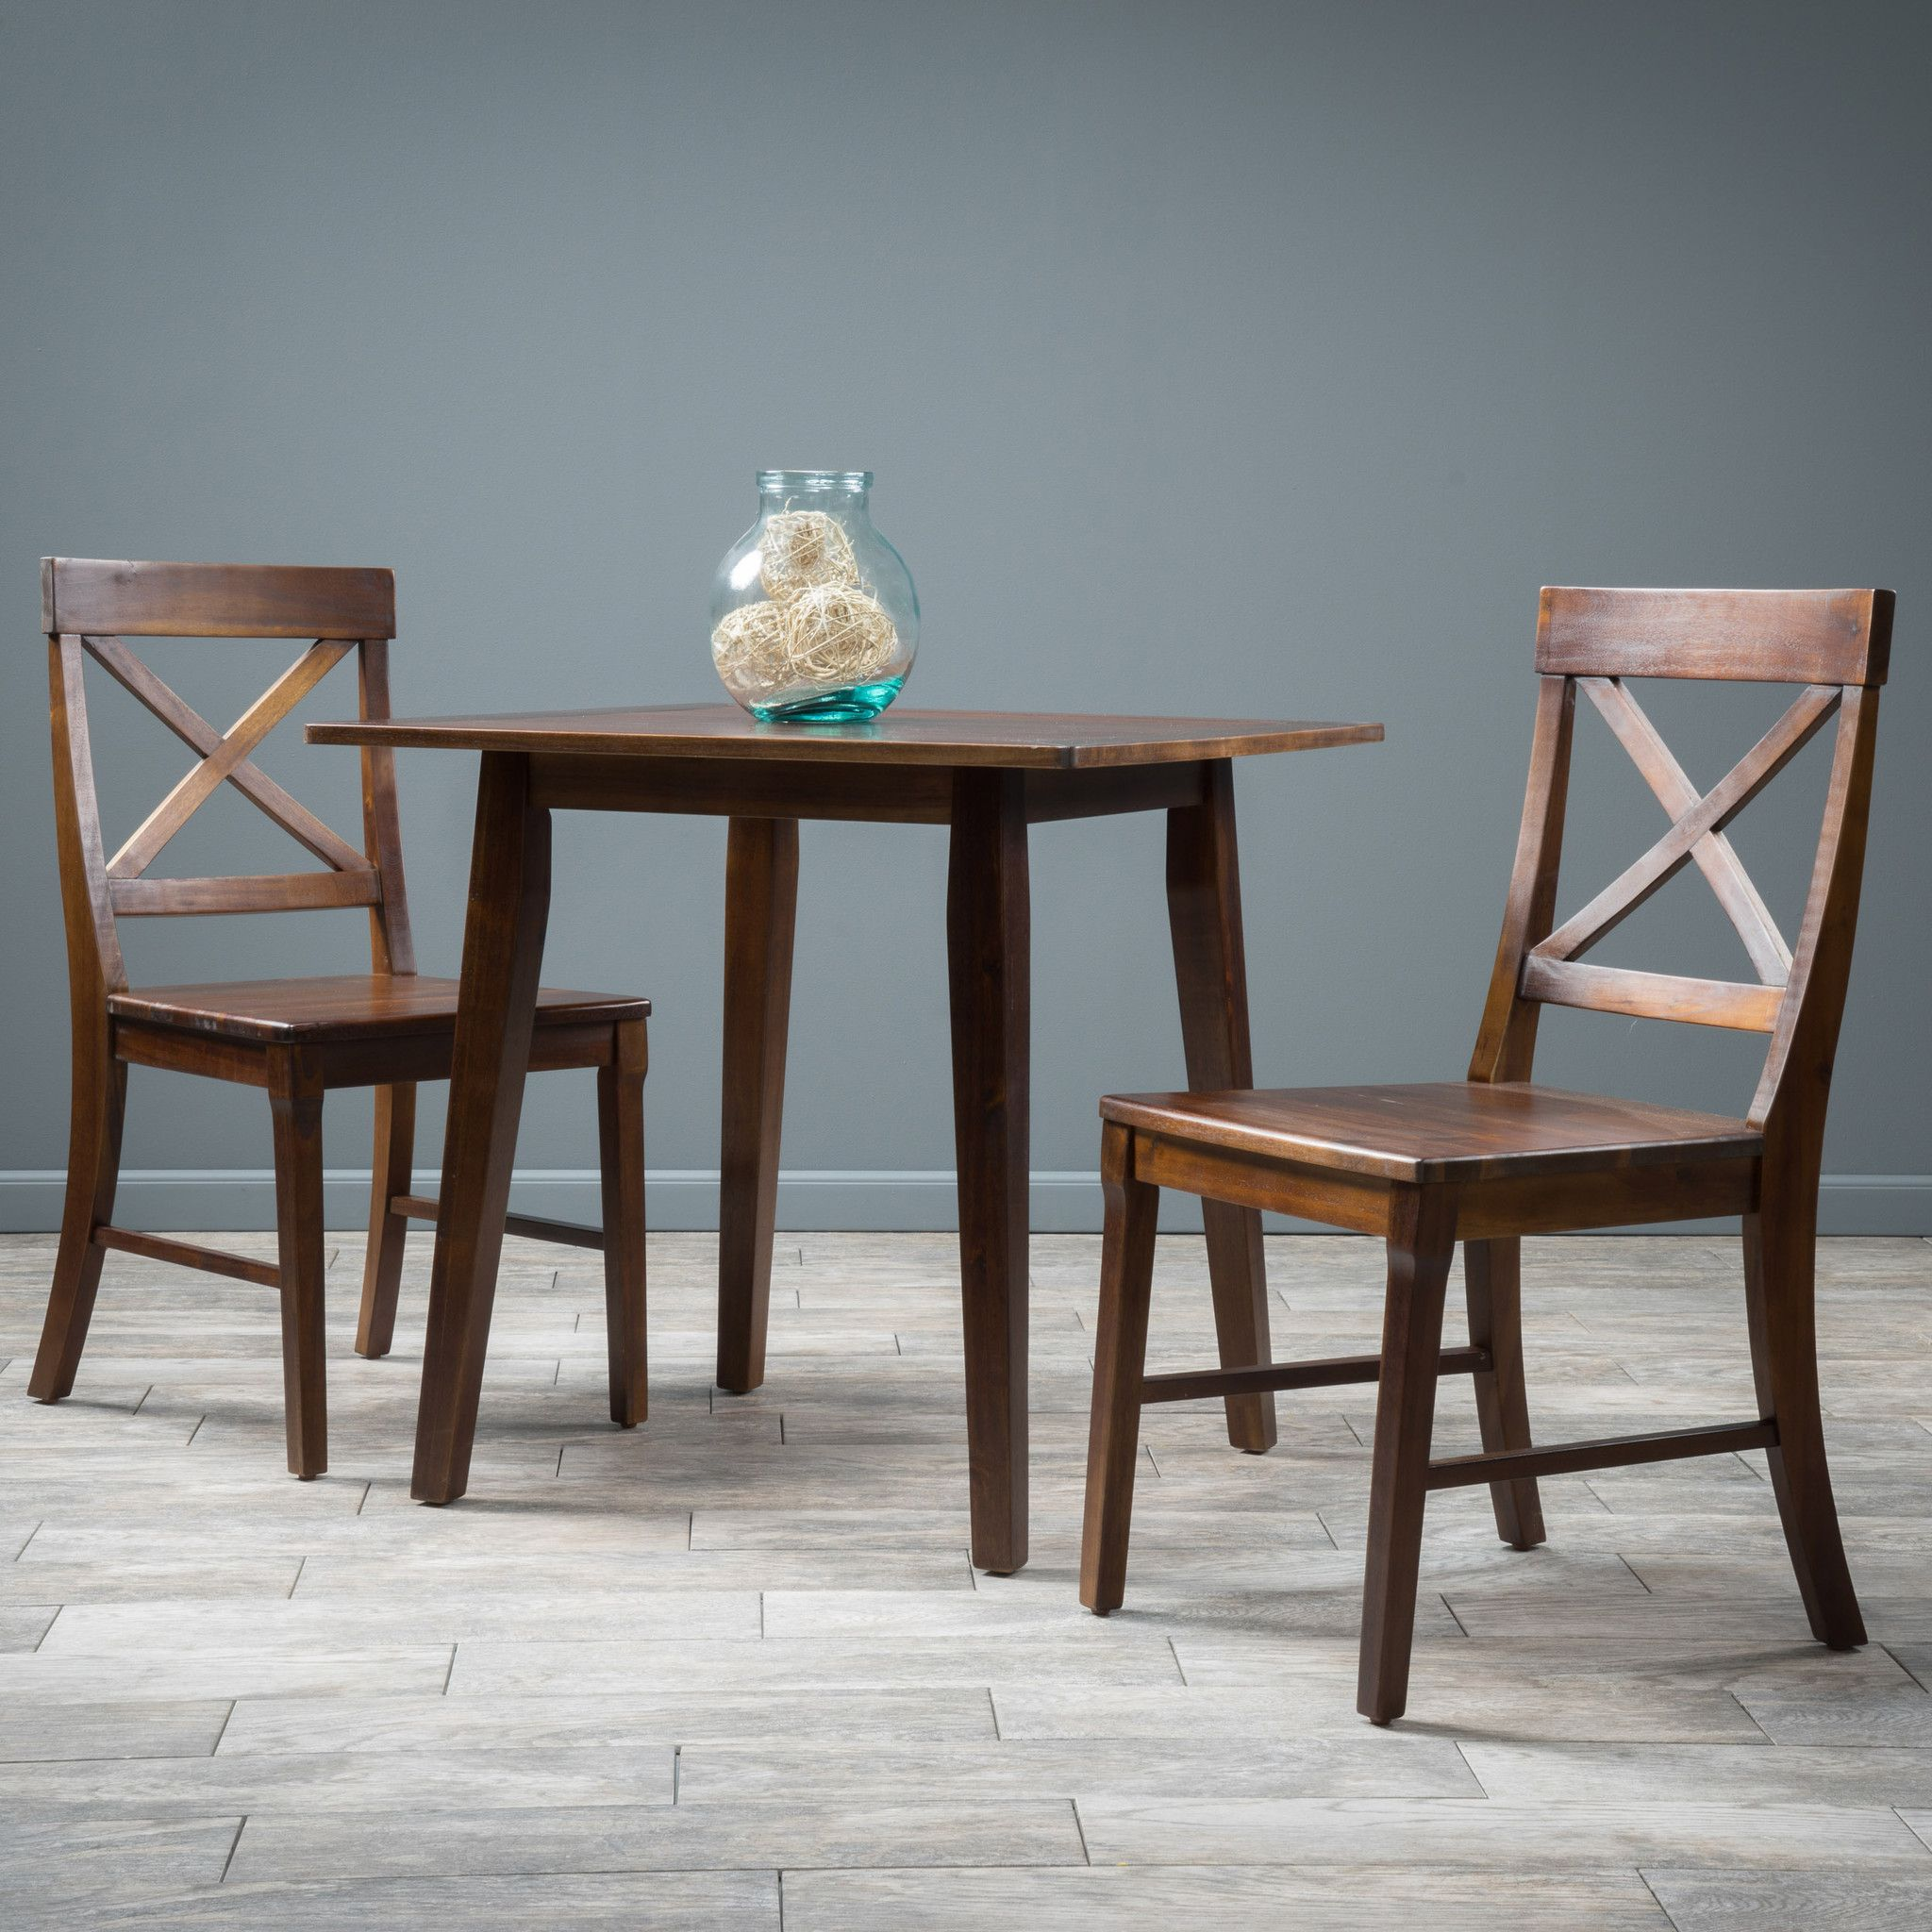 Potter 3pc Mahogany Stained Wood Dining Set | Mahogany stain and ...